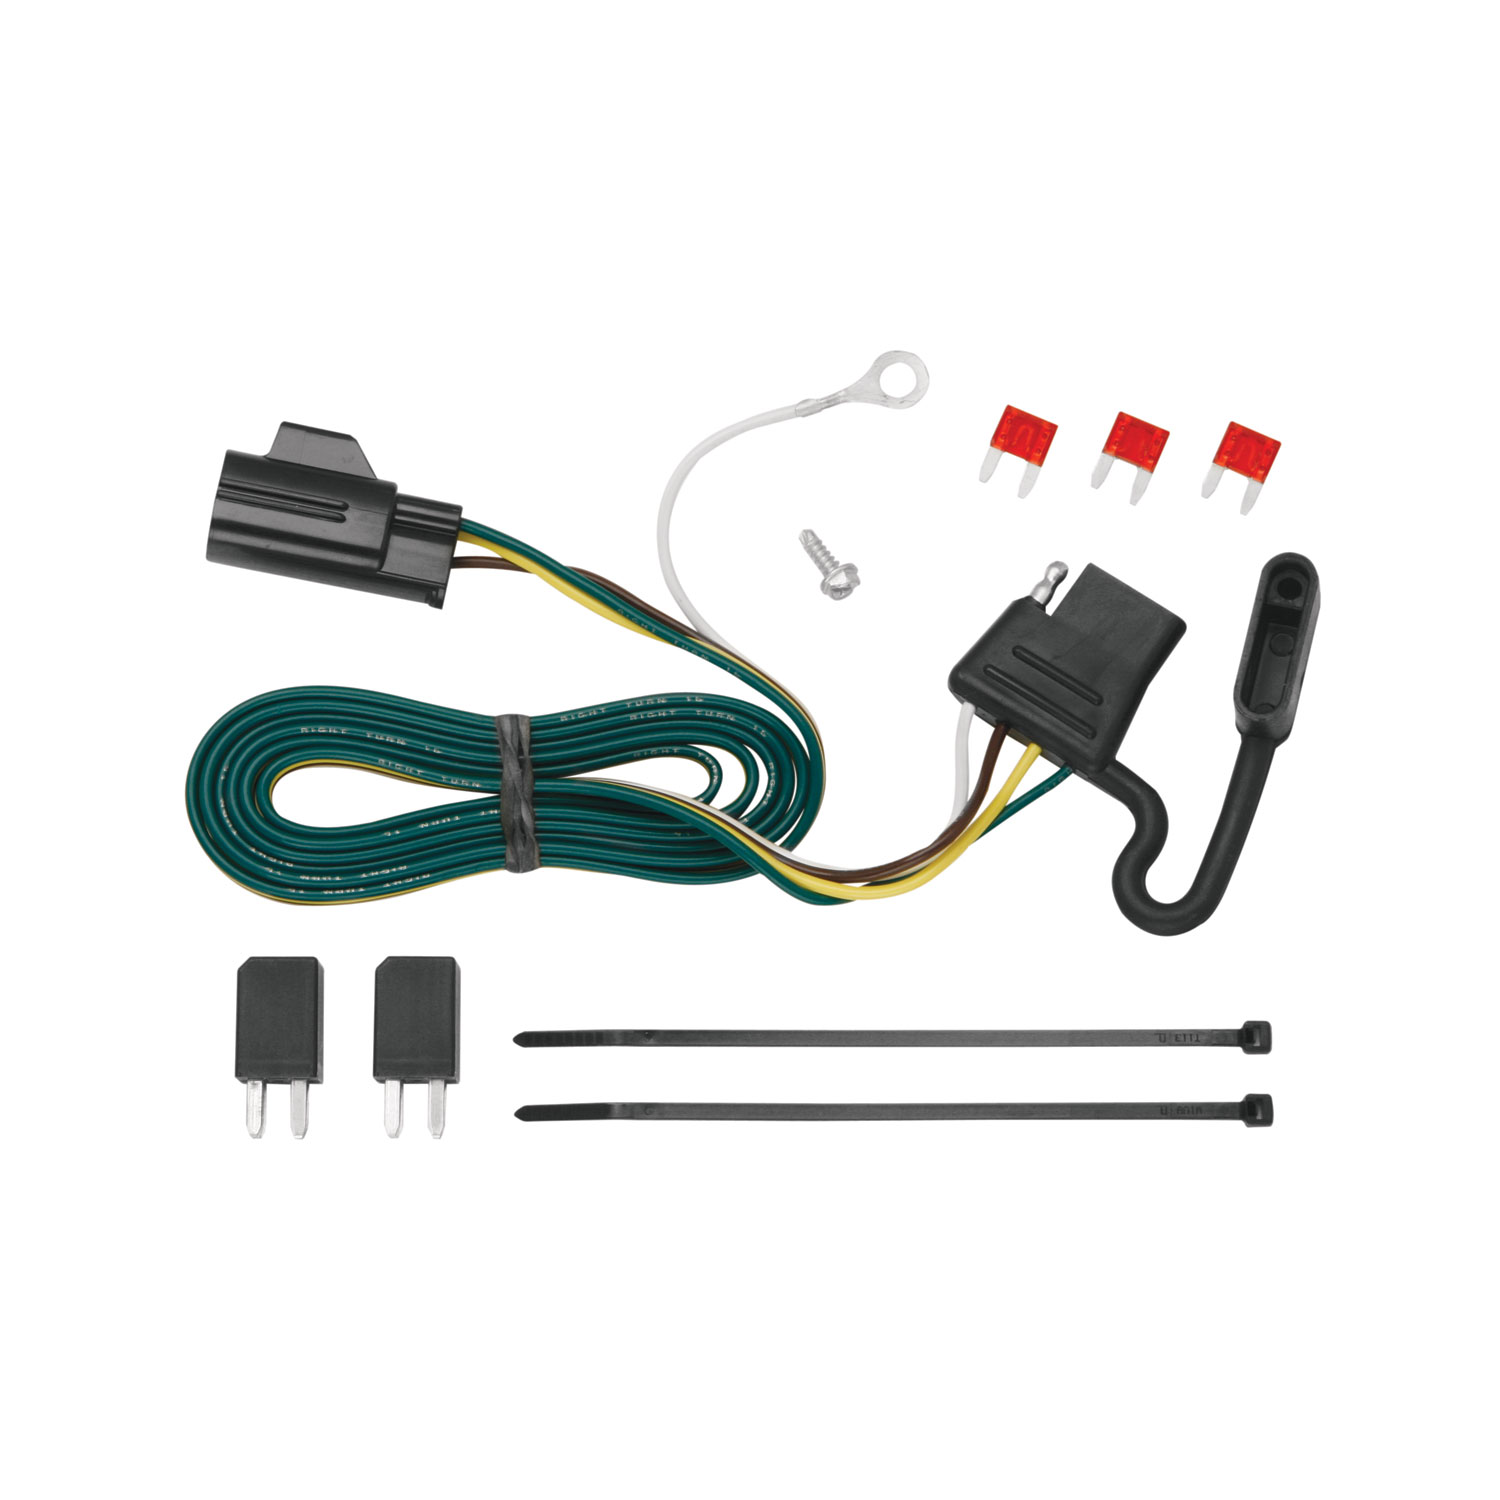 T Connector Trailer Wiring Harness Walmart - All Wiring Diagram on